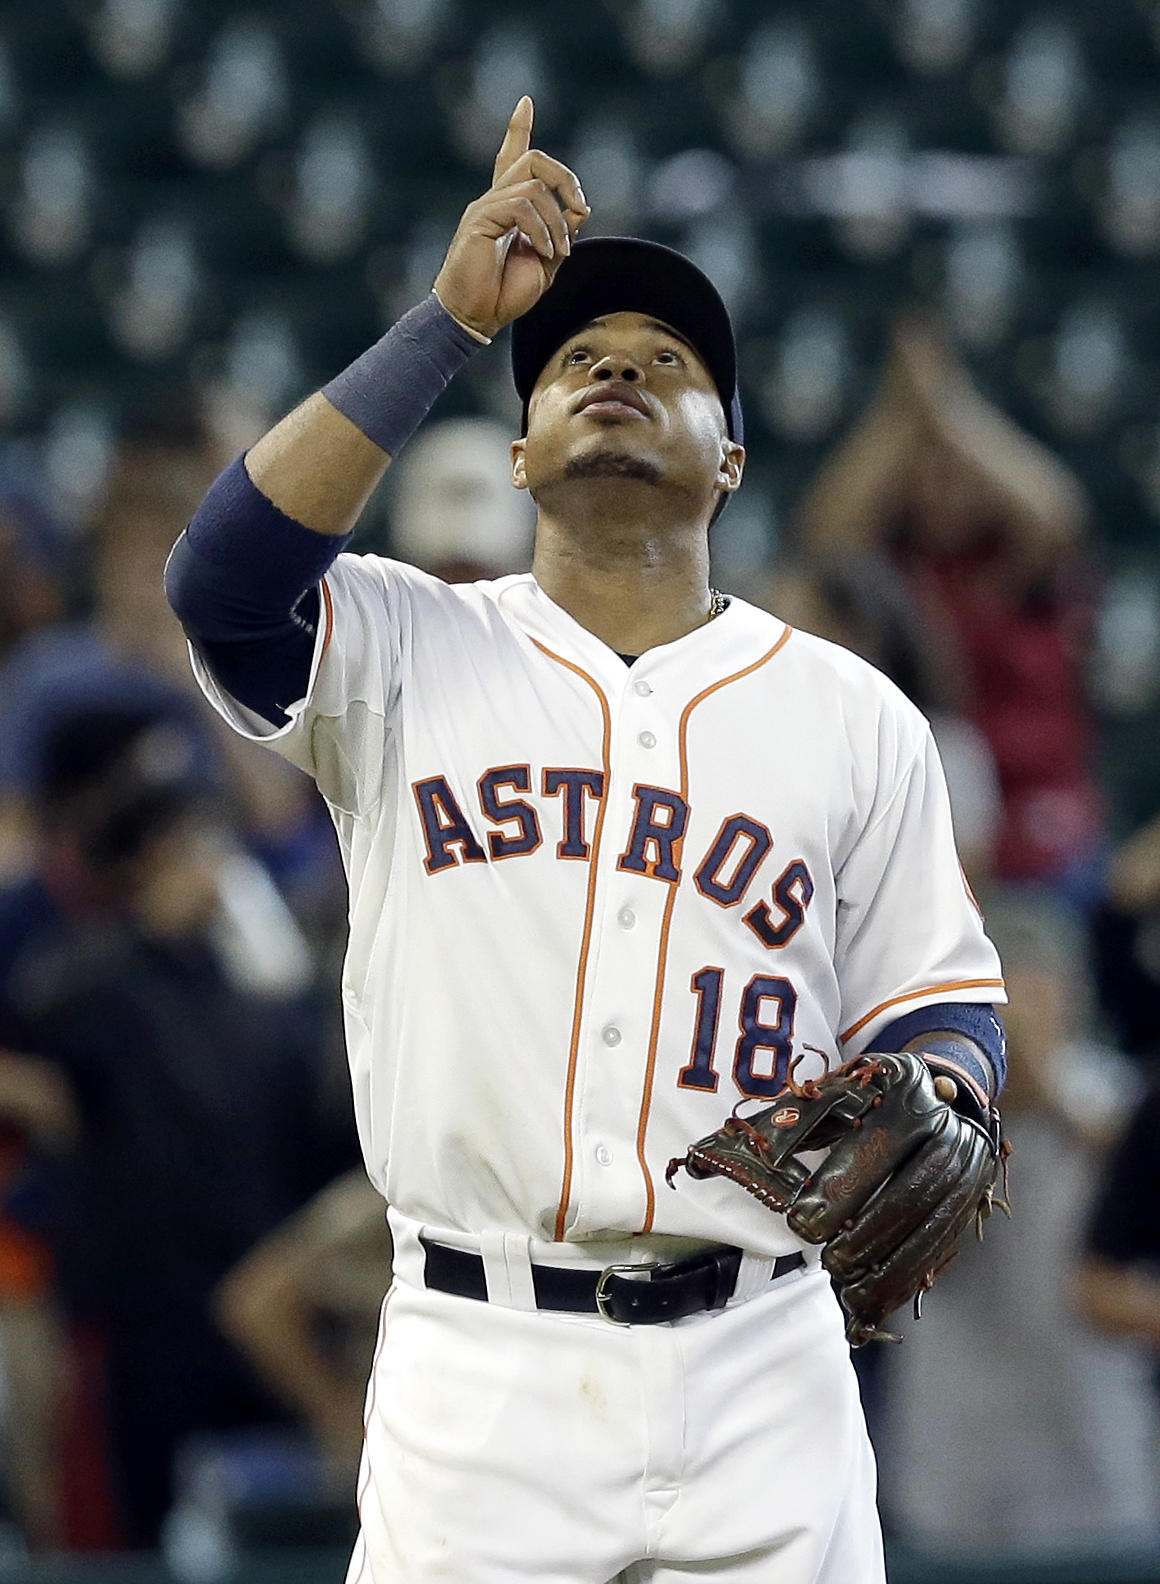 Houston Astros' Luis Valbuena points up as he heads off the field after the Astros beat the Colorado Rockies 8-5 in a baseball game Tuesday, June 16, 2015, in Houston. Valbuena hit two home runs in the game for four of the Astros eight runs. (AP Photo/Pat